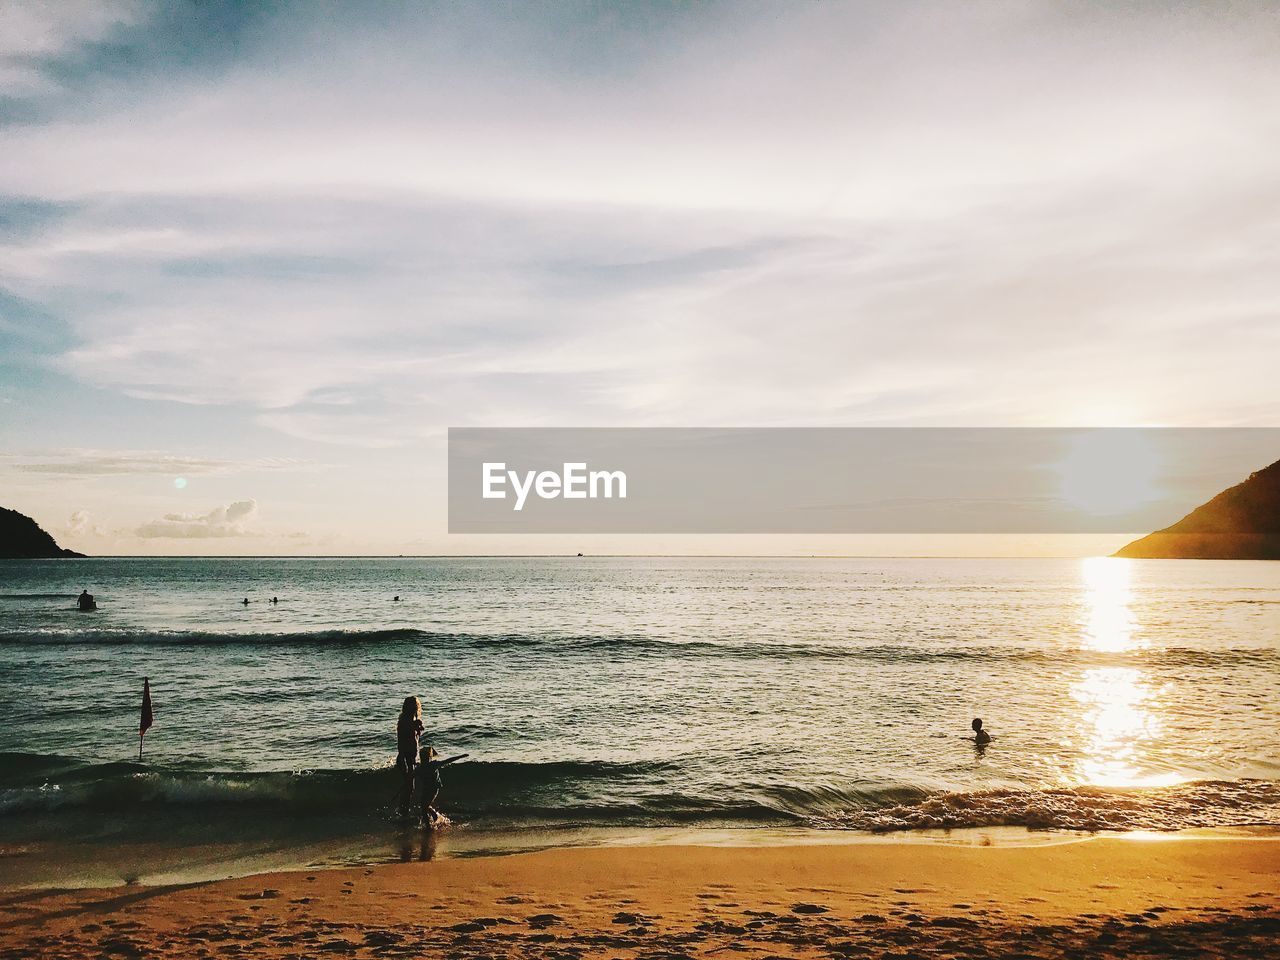 water, sky, sea, beauty in nature, beach, scenics - nature, horizon over water, horizon, sunset, land, real people, cloud - sky, tranquility, nature, one person, lifestyles, tranquil scene, leisure activity, non-urban scene, outdoors